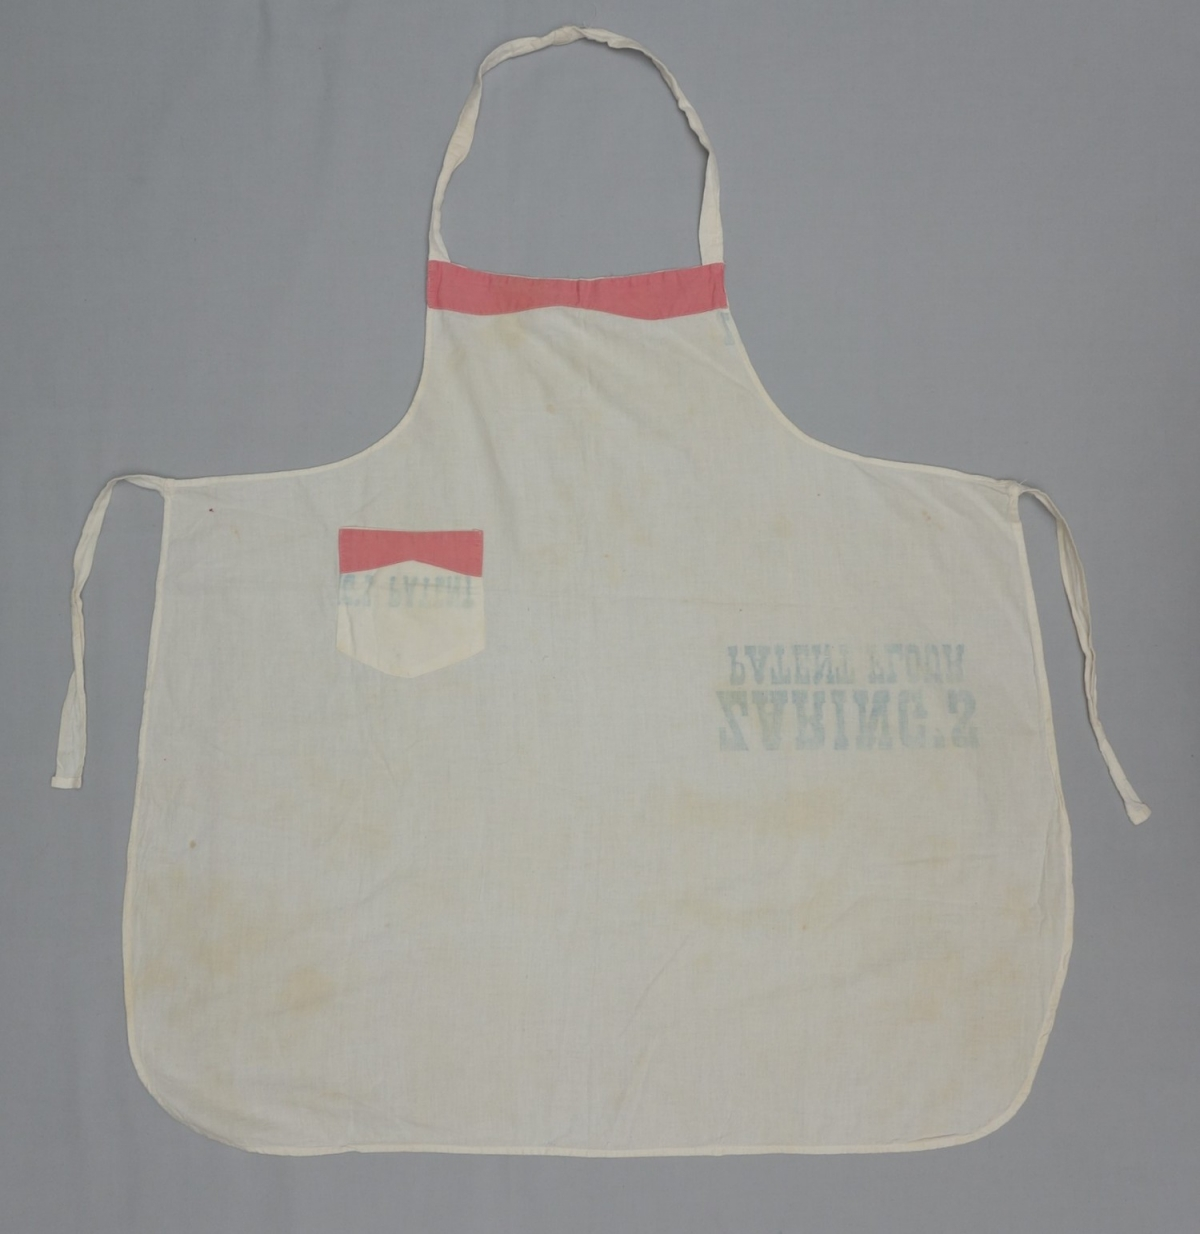 Bibbed apron with a small pocket made from bleached flour sacks. Parts of the bib and the pocket have been decorated with applied cotton cloth in pink.